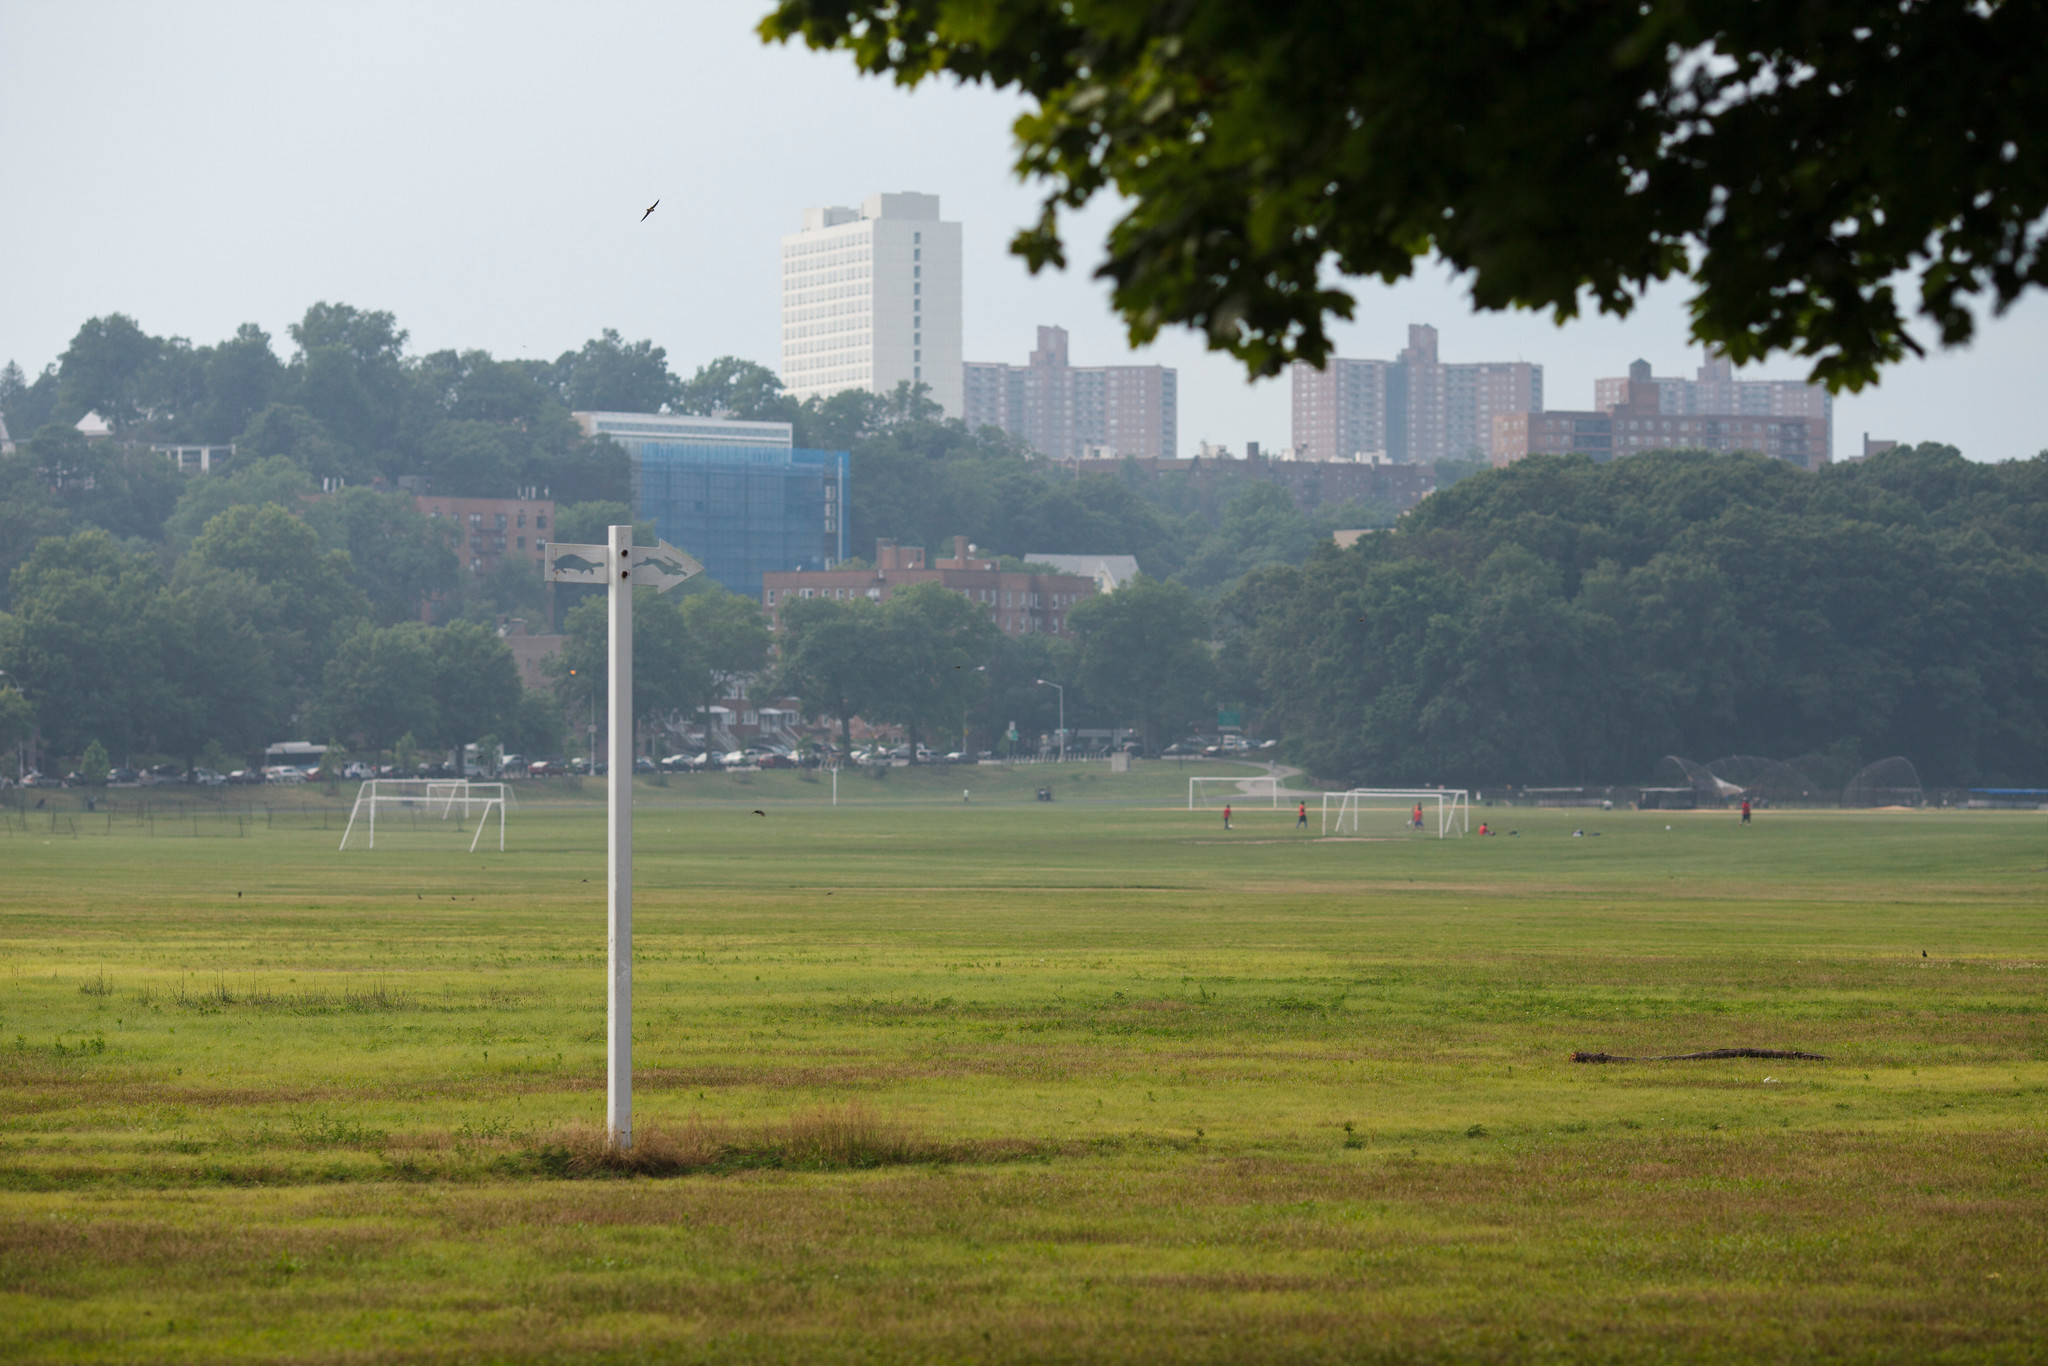 NYC's third-largest park to host 200-bed emergency hospital, local officials say